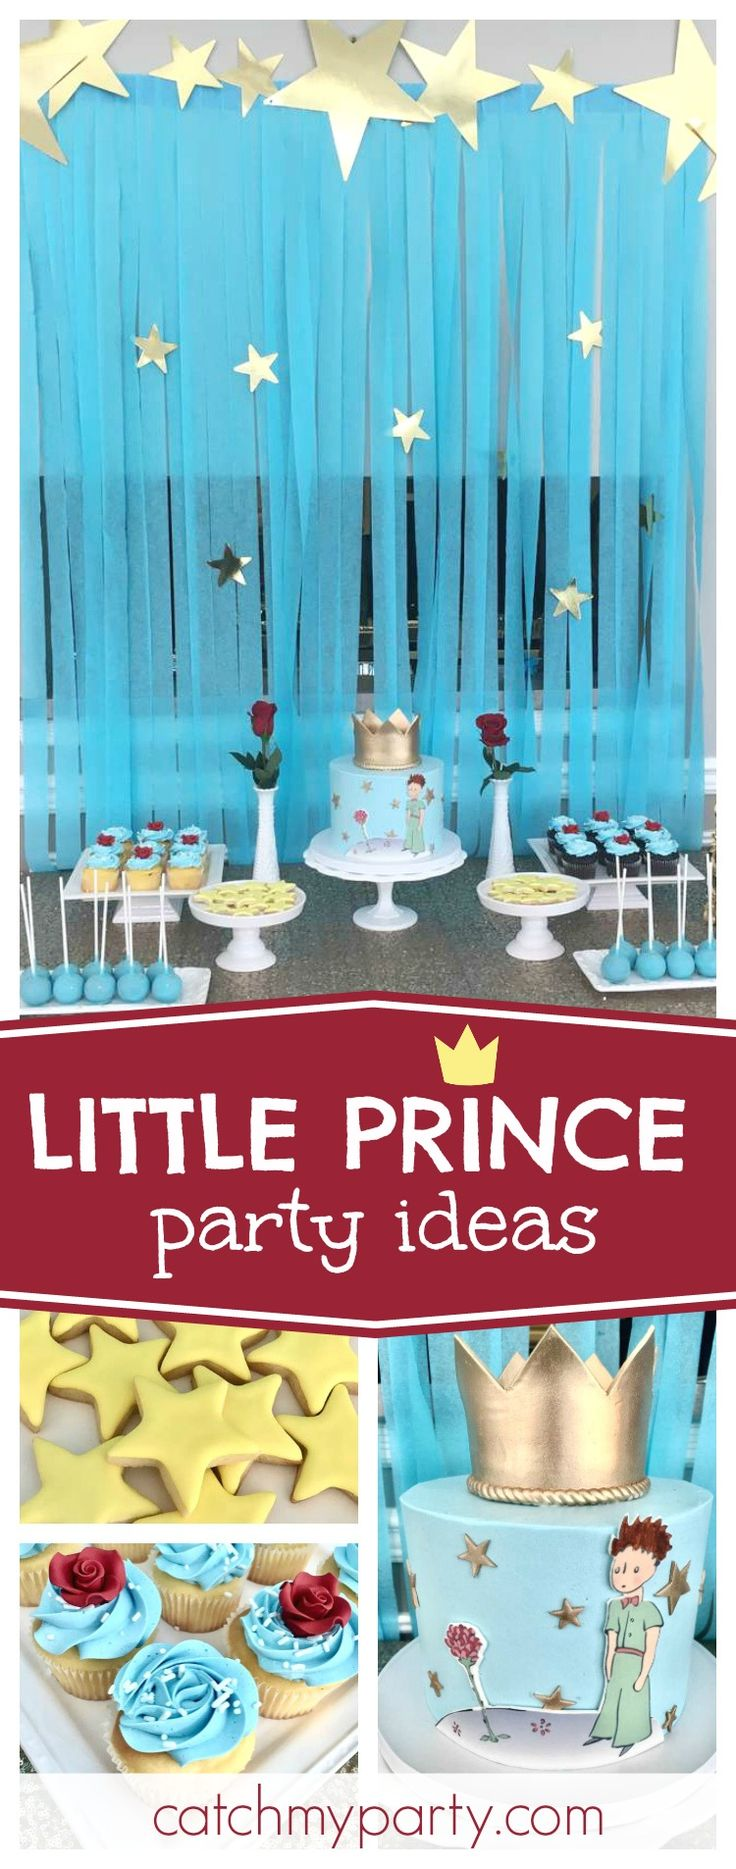 Check out this fantastic Little Prince Birthday Party! The birthday cake is so beautiful! See more party ideas and share yours at CatchMyParty.com